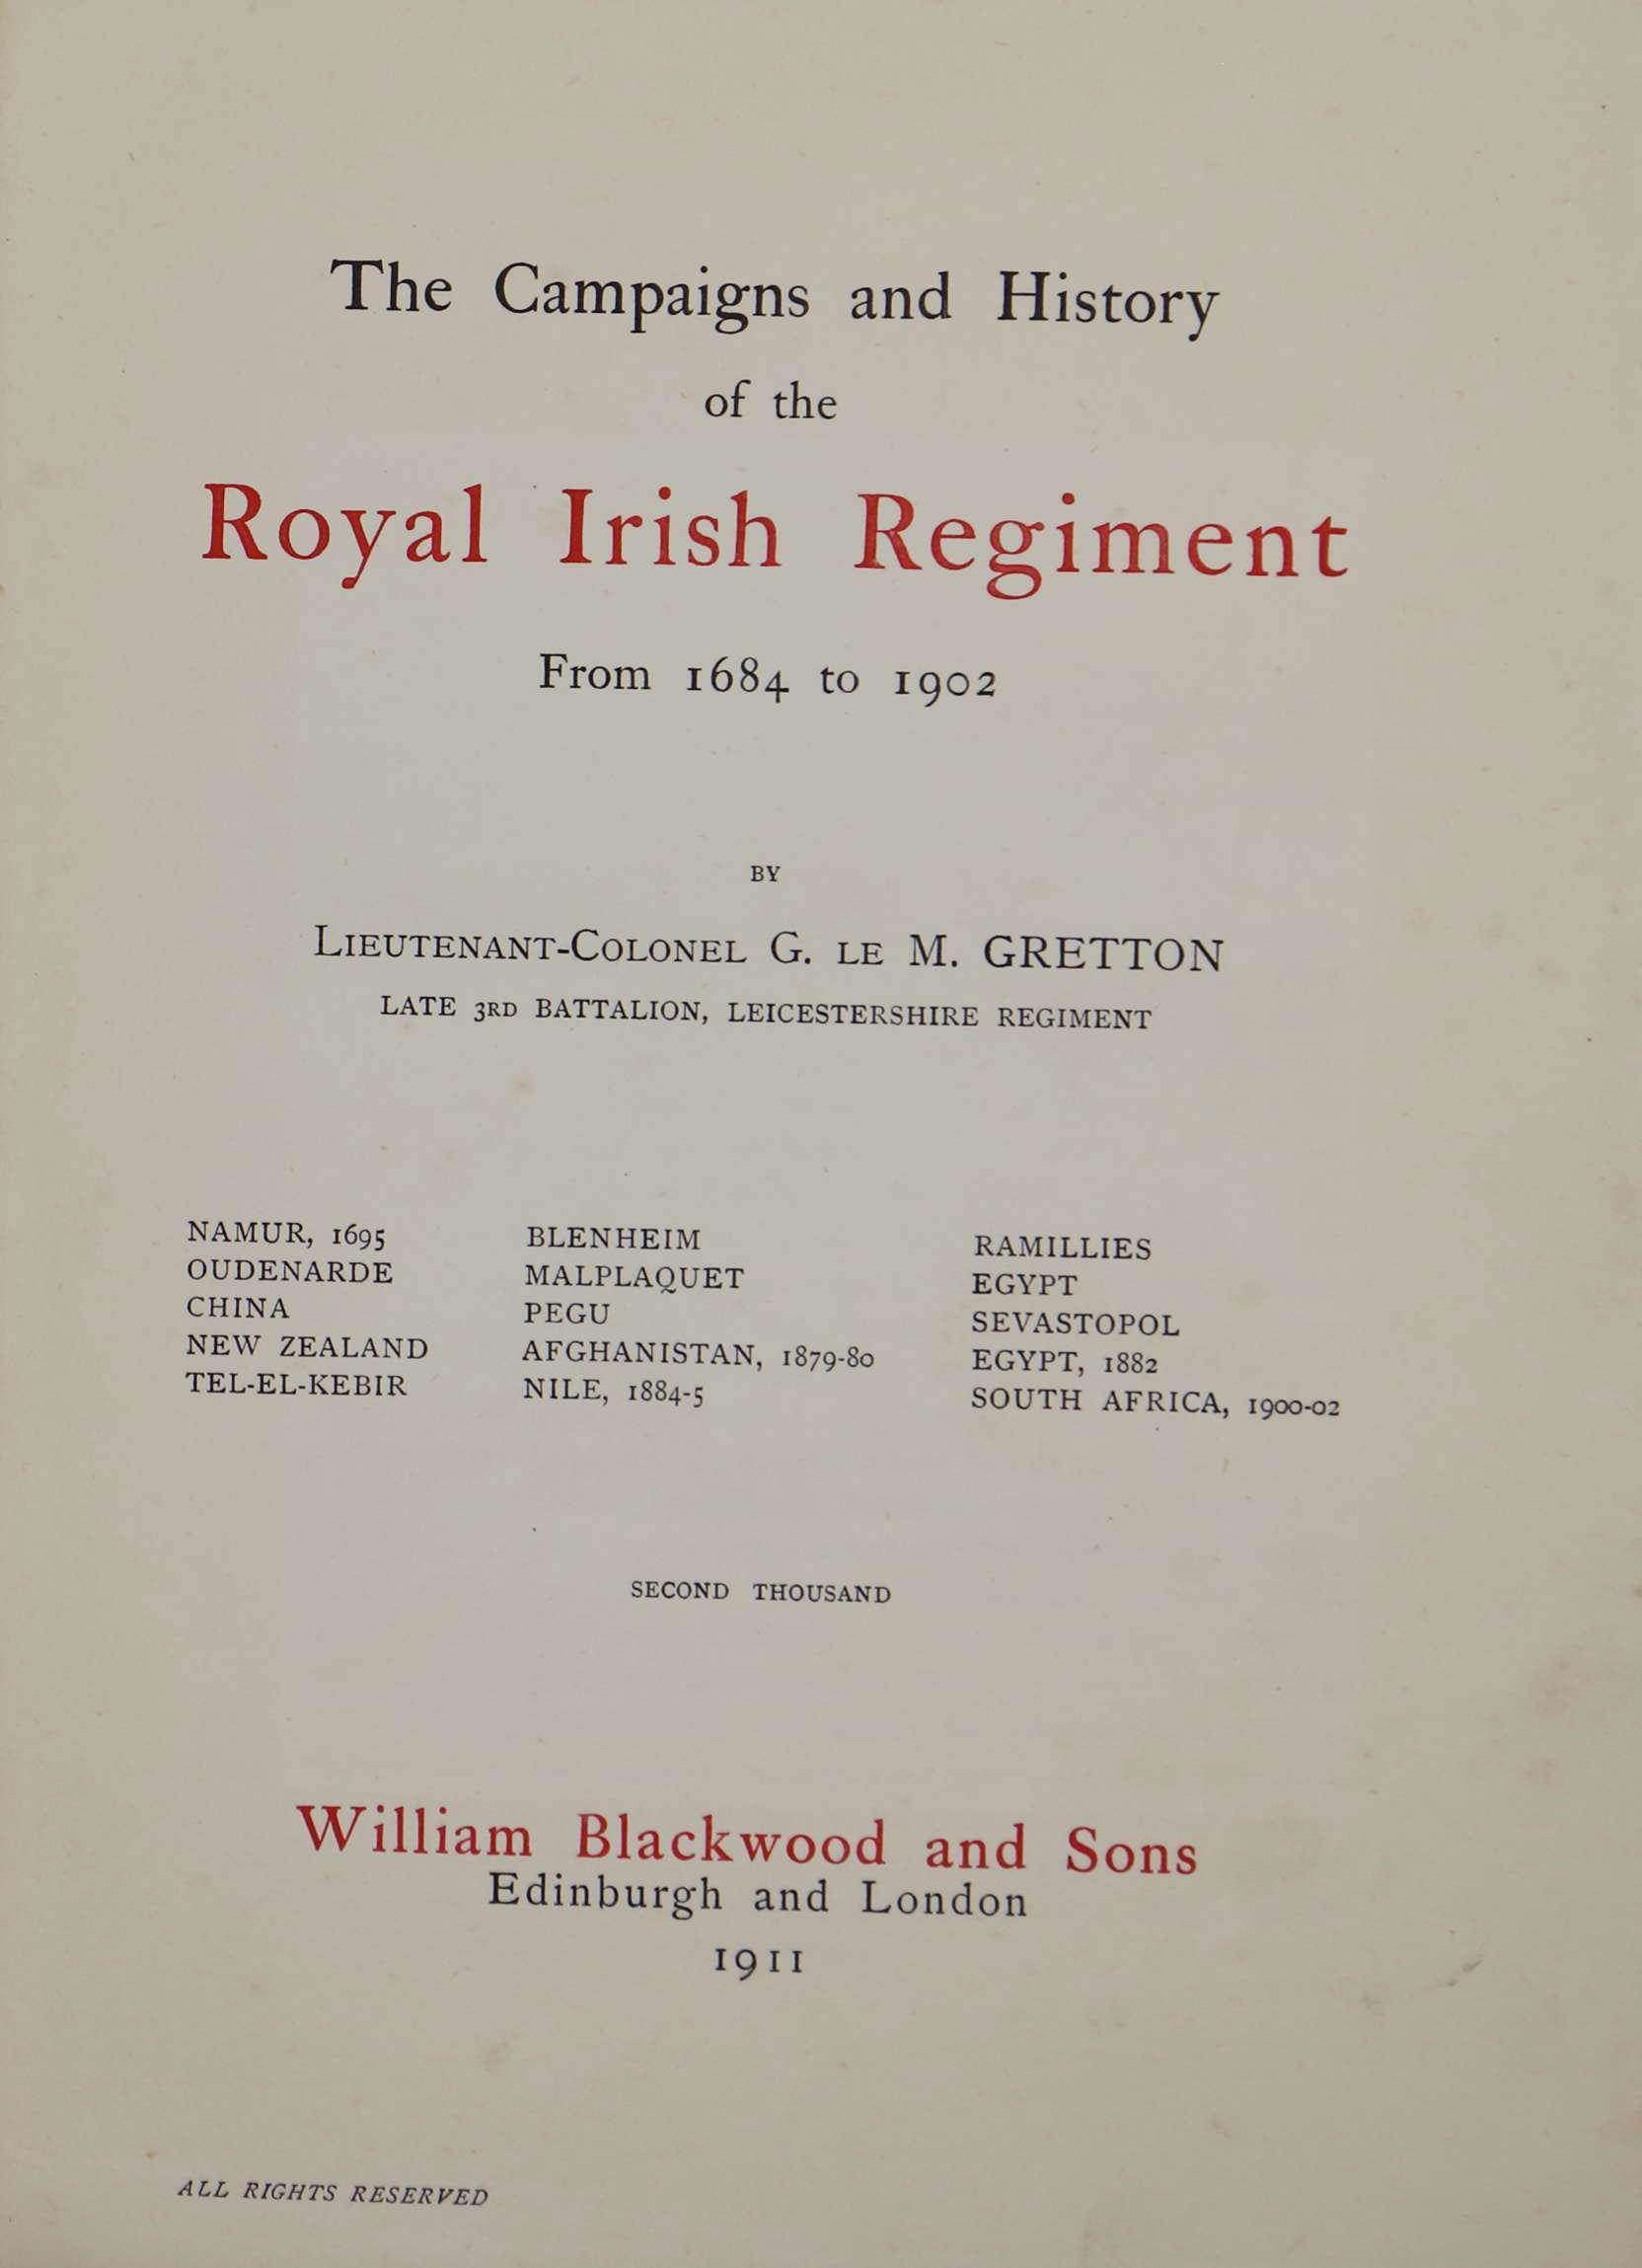 photo of The Campaigns and History of the Royal Irish Regiment from 1684 to 1902. 1911